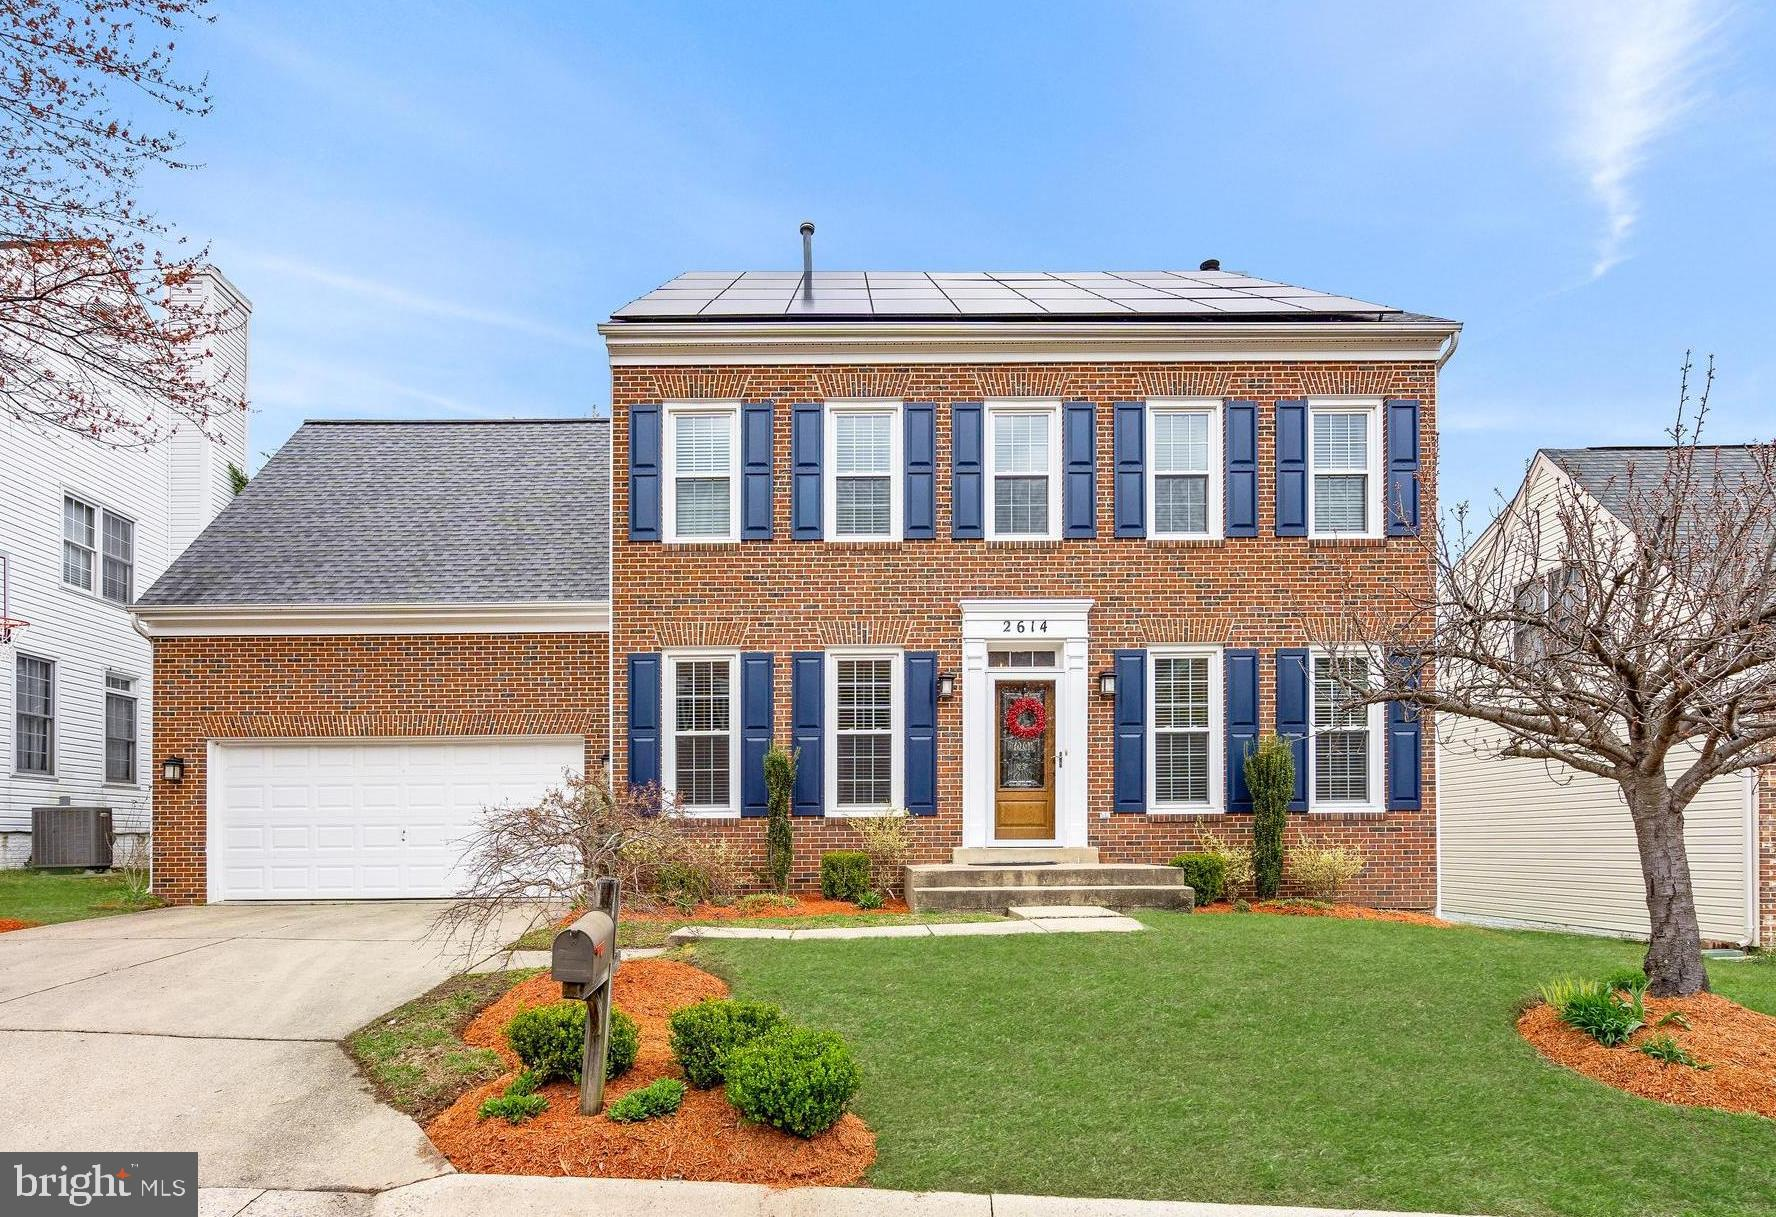 2614 HERSHFIELD COURT, SILVER SPRING, MD 20904